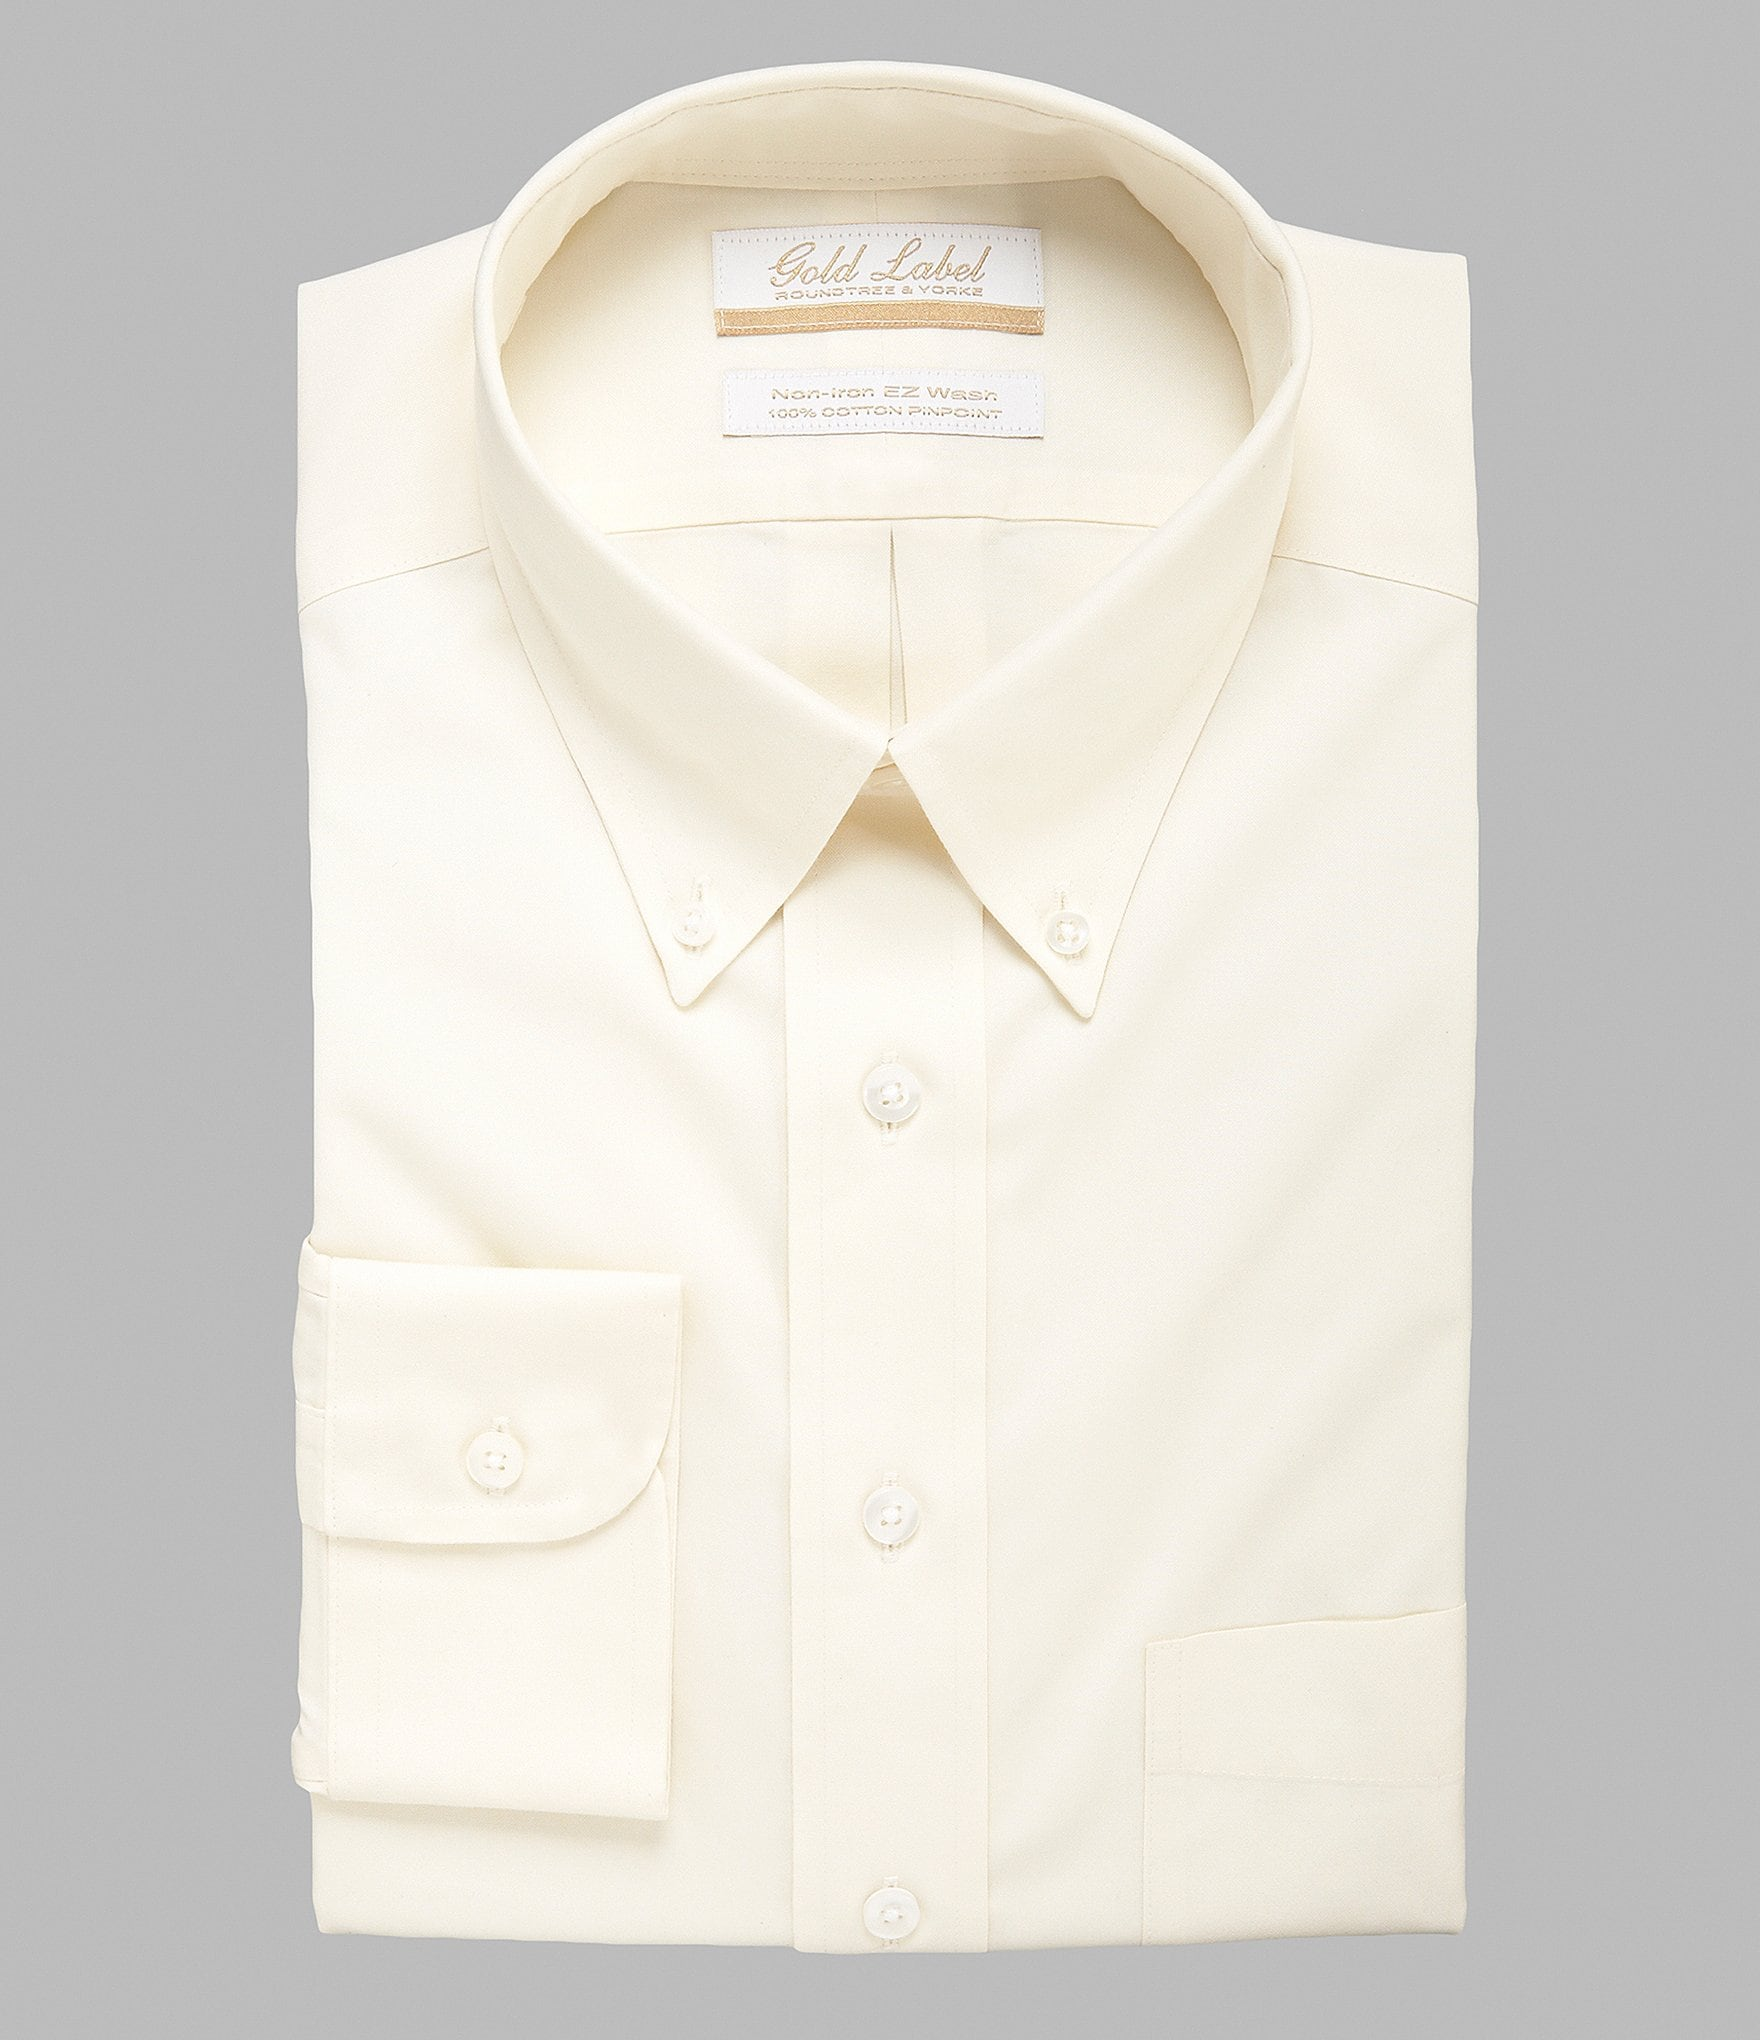 Mens ivory dress shirt kamos t shirt for Mens ivory dress shirt wedding